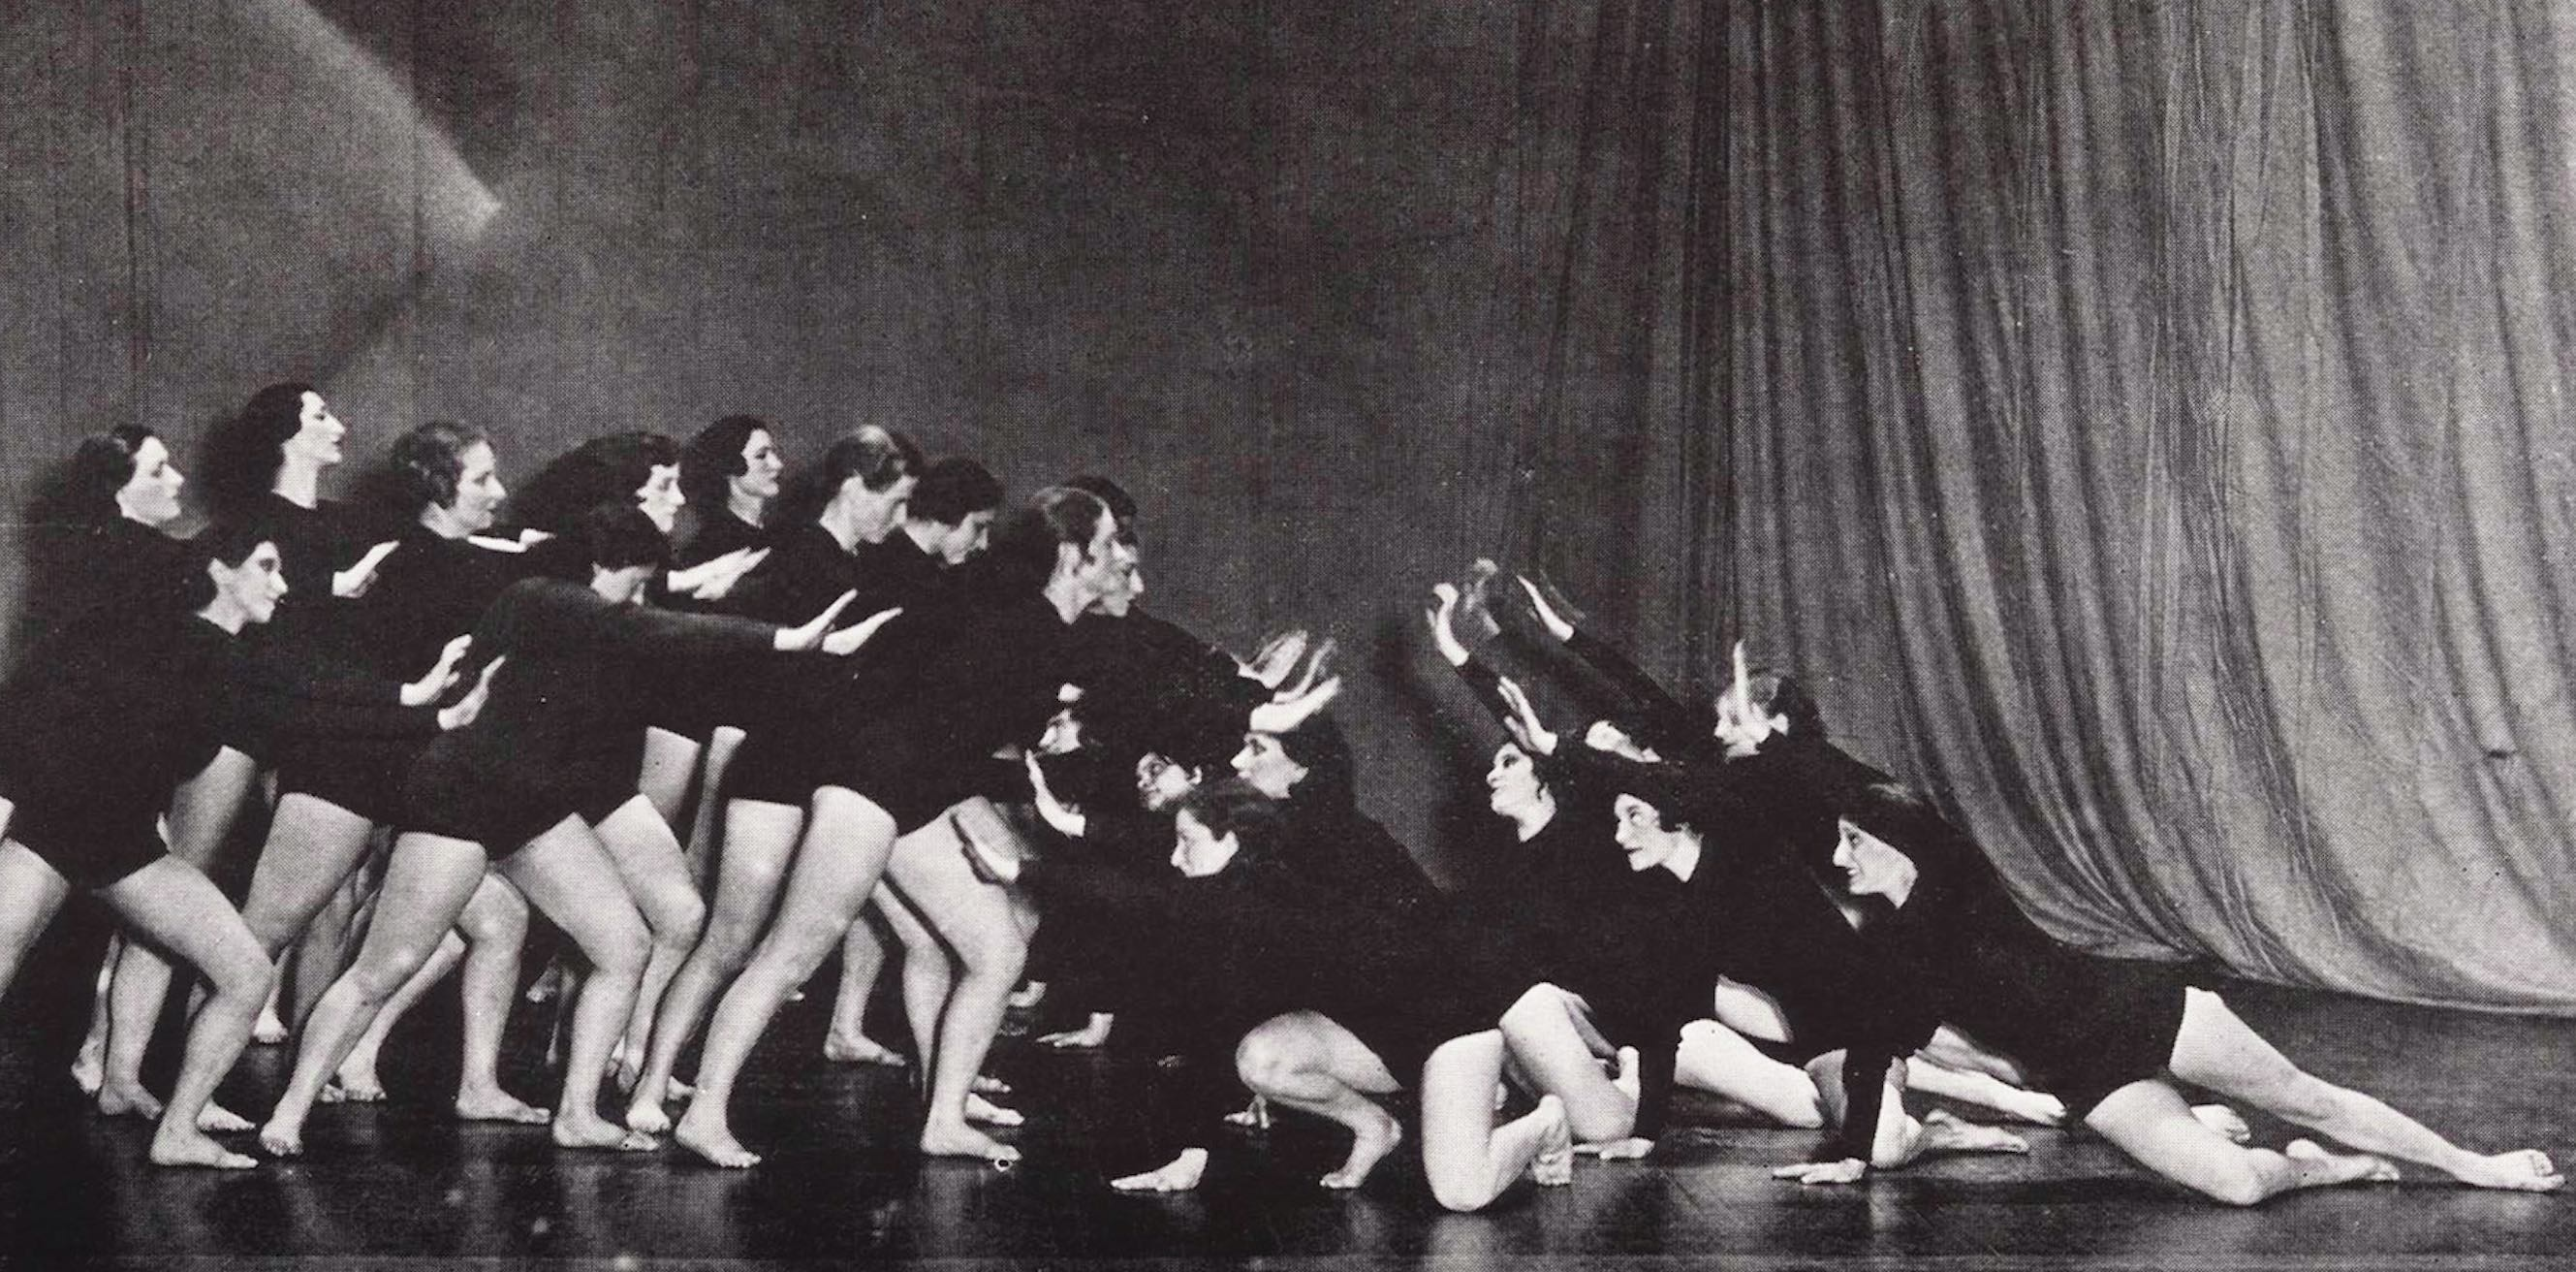 Bennington dance 1950s, journal of wild culture ©2020